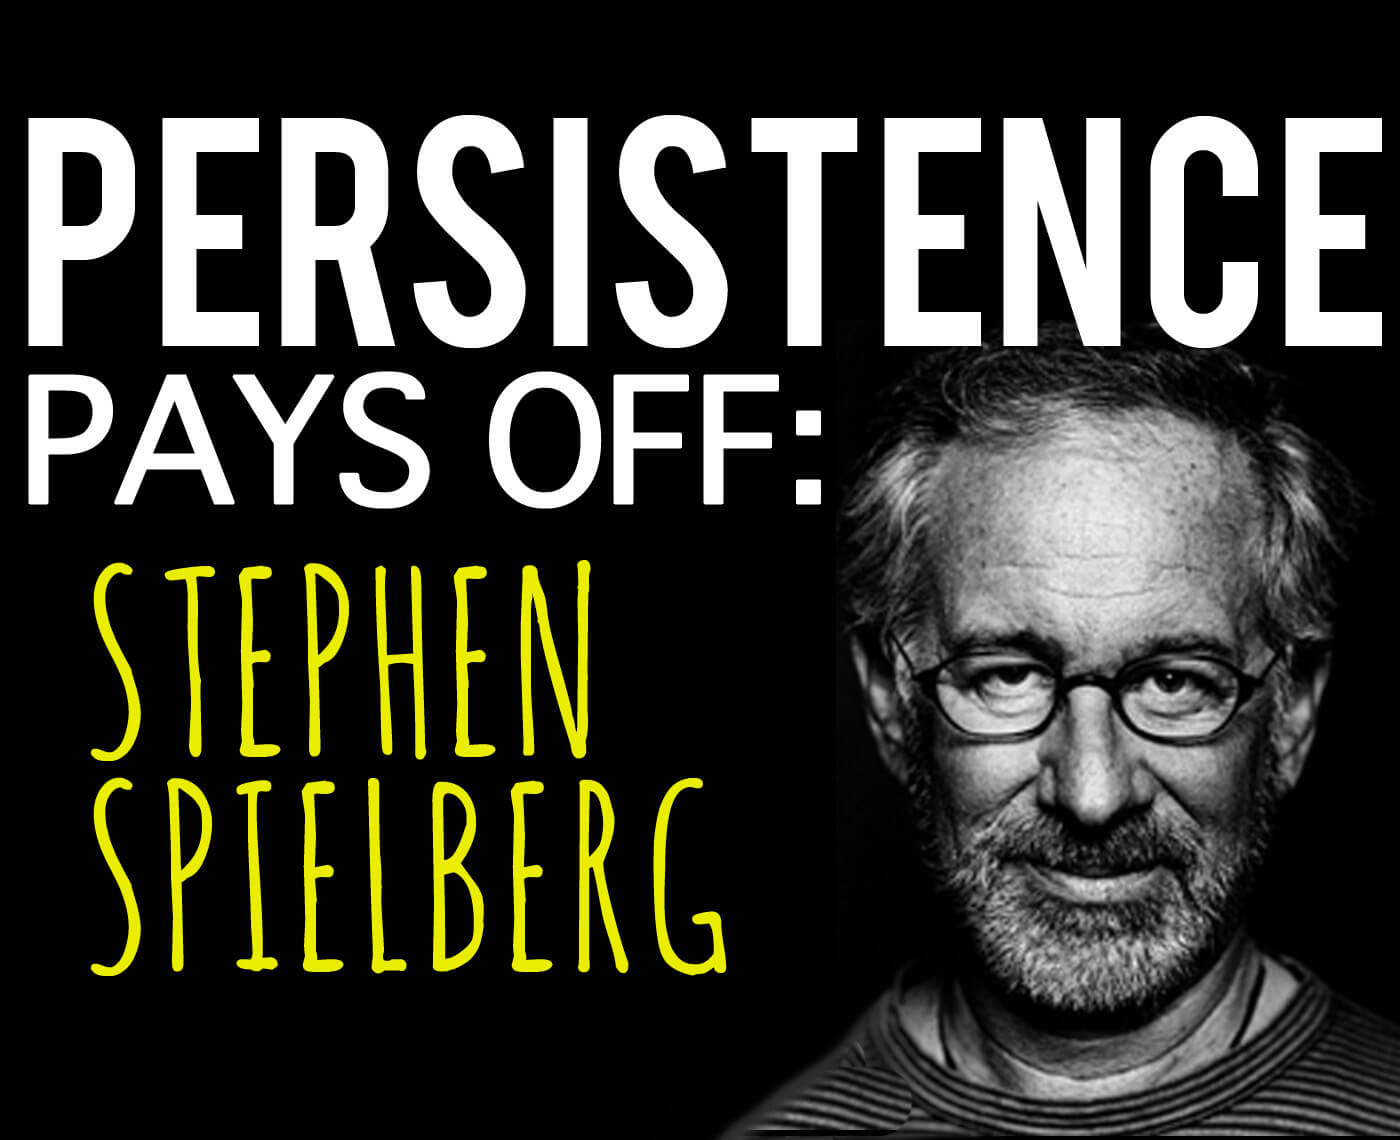 perstistence Quotes tagged as persistence (showing 1-30 of 641) courage is the most important of all the virtues because without courage, you can't practice any other virtue consistently.